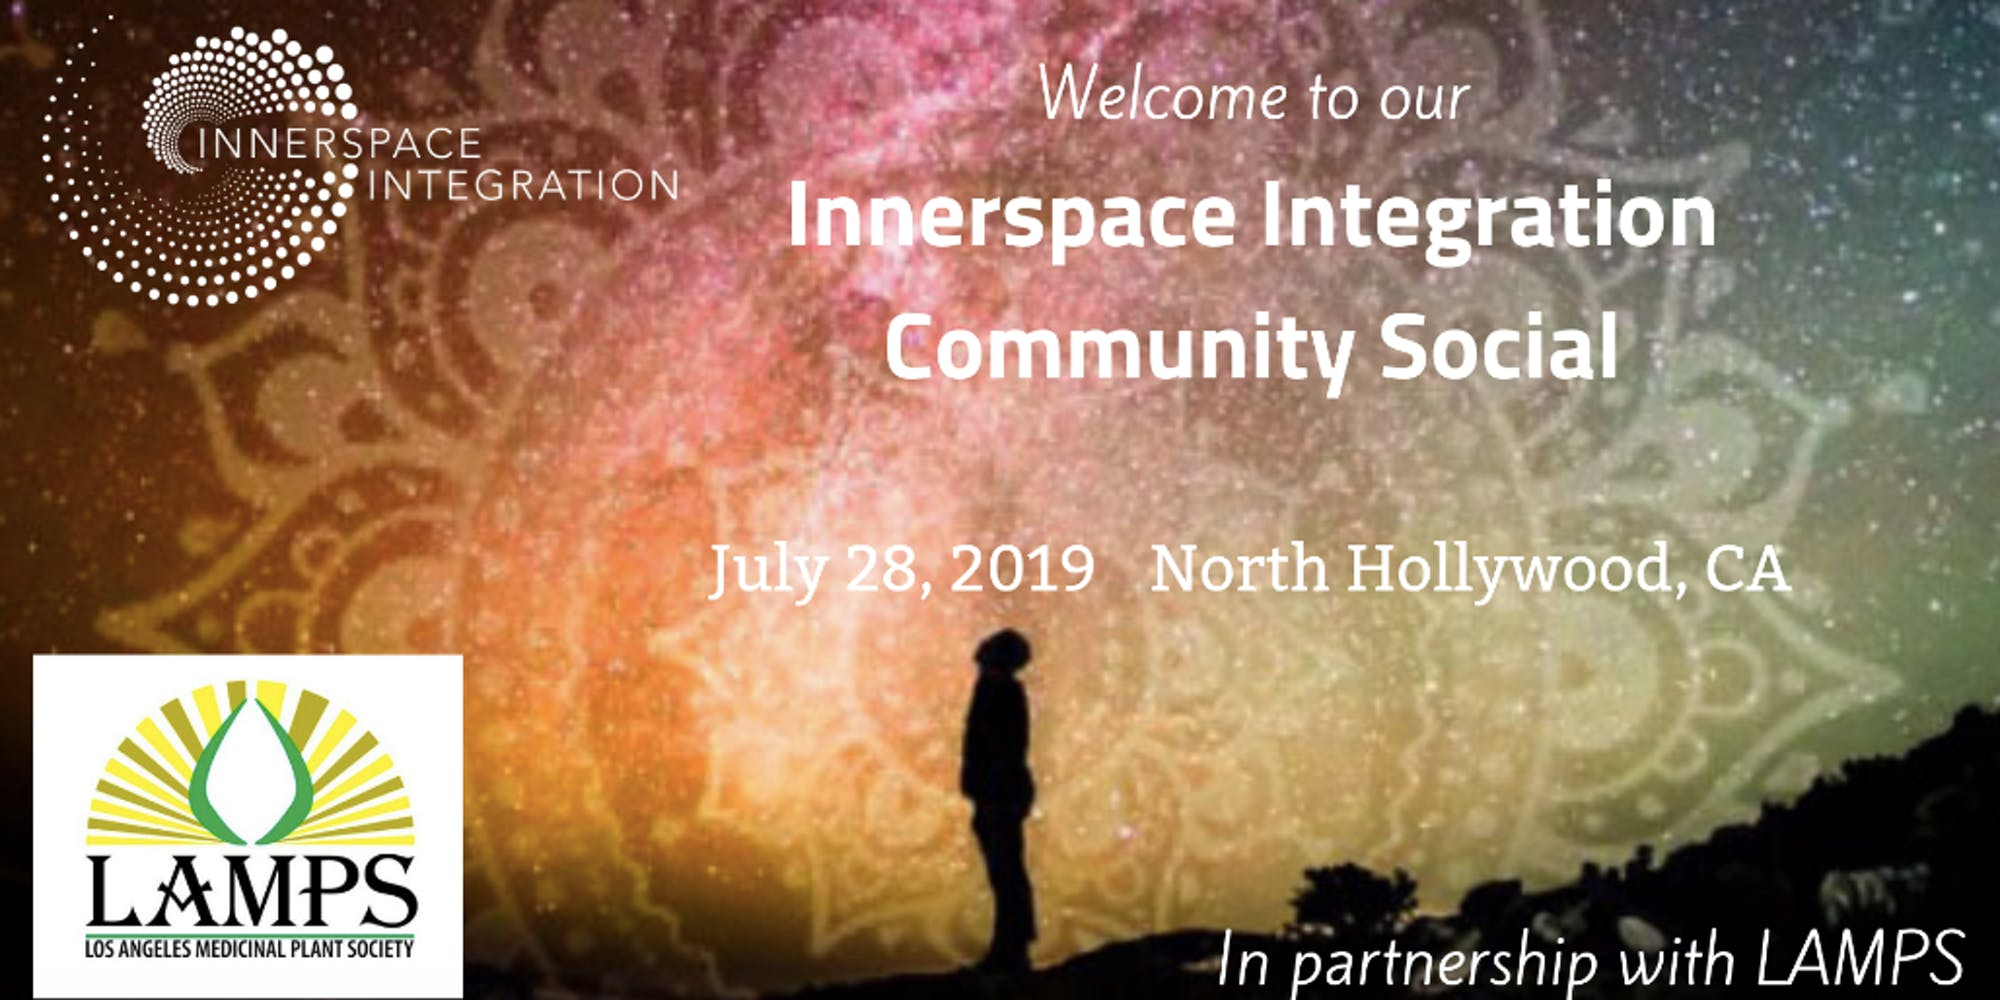 InnerSpace Integration Community Social